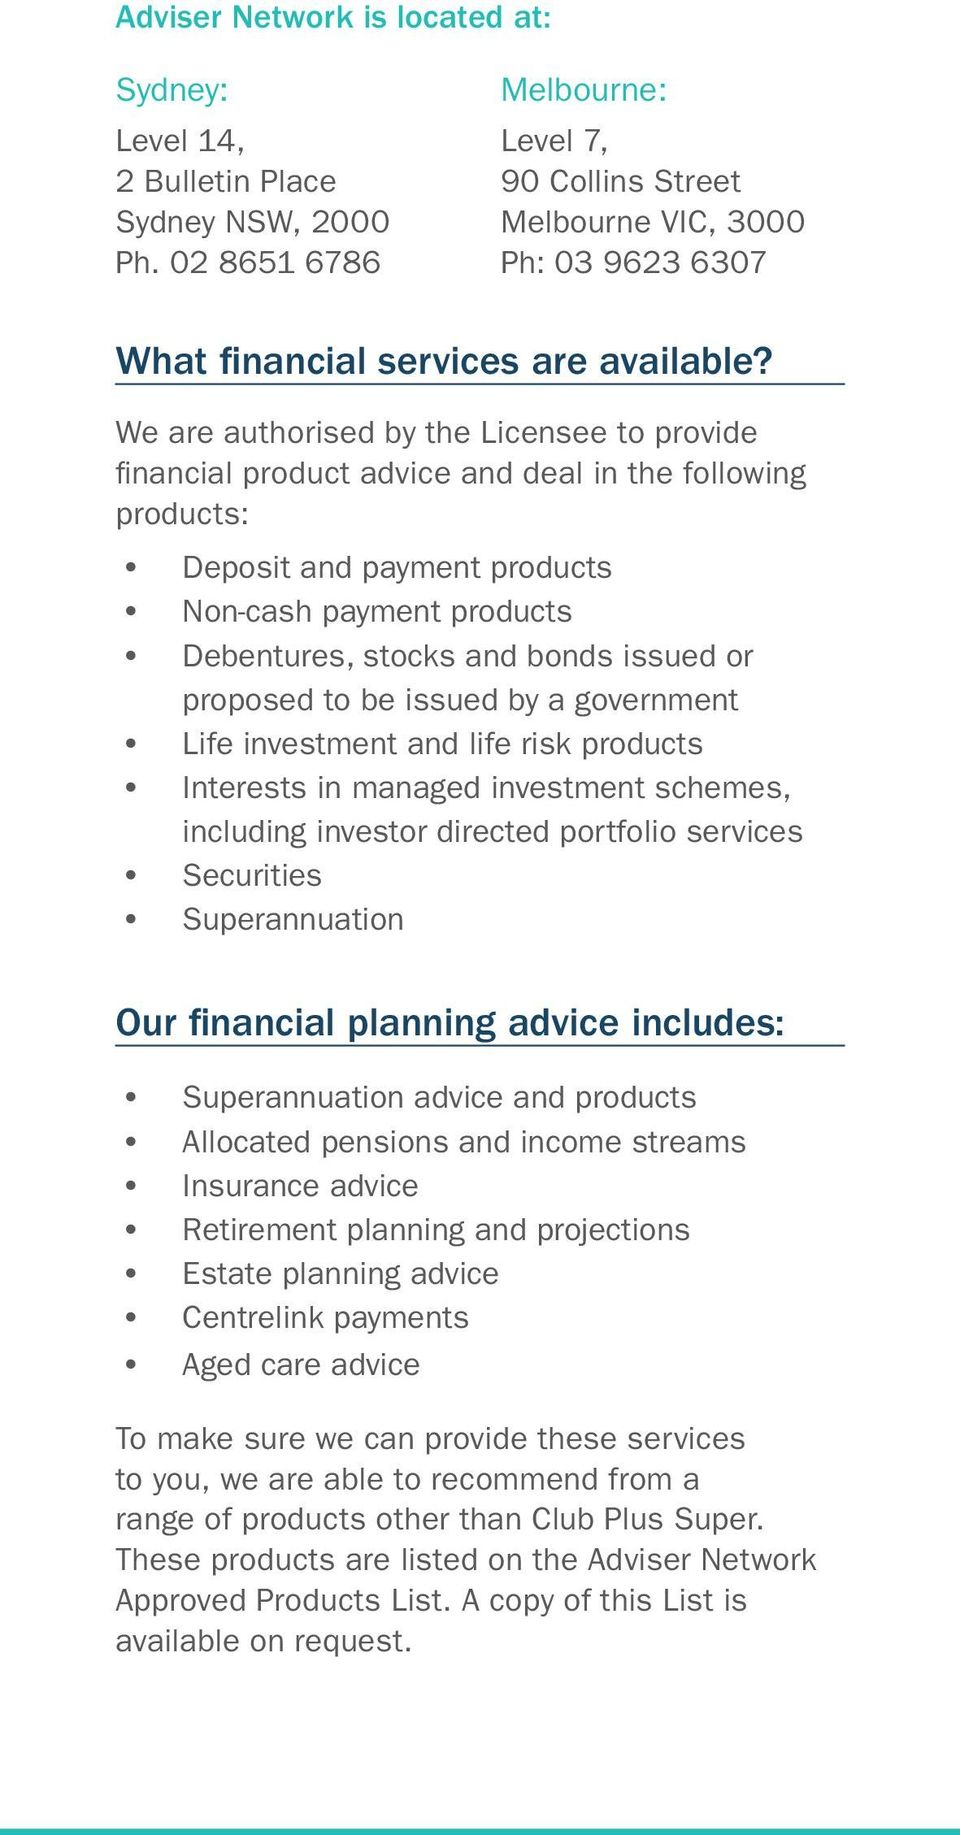 We are authorised by the Licensee to provide financial product advice and deal in the following products: Deposit and payment products Non-cash payment products Debentures, stocks and bonds issued or